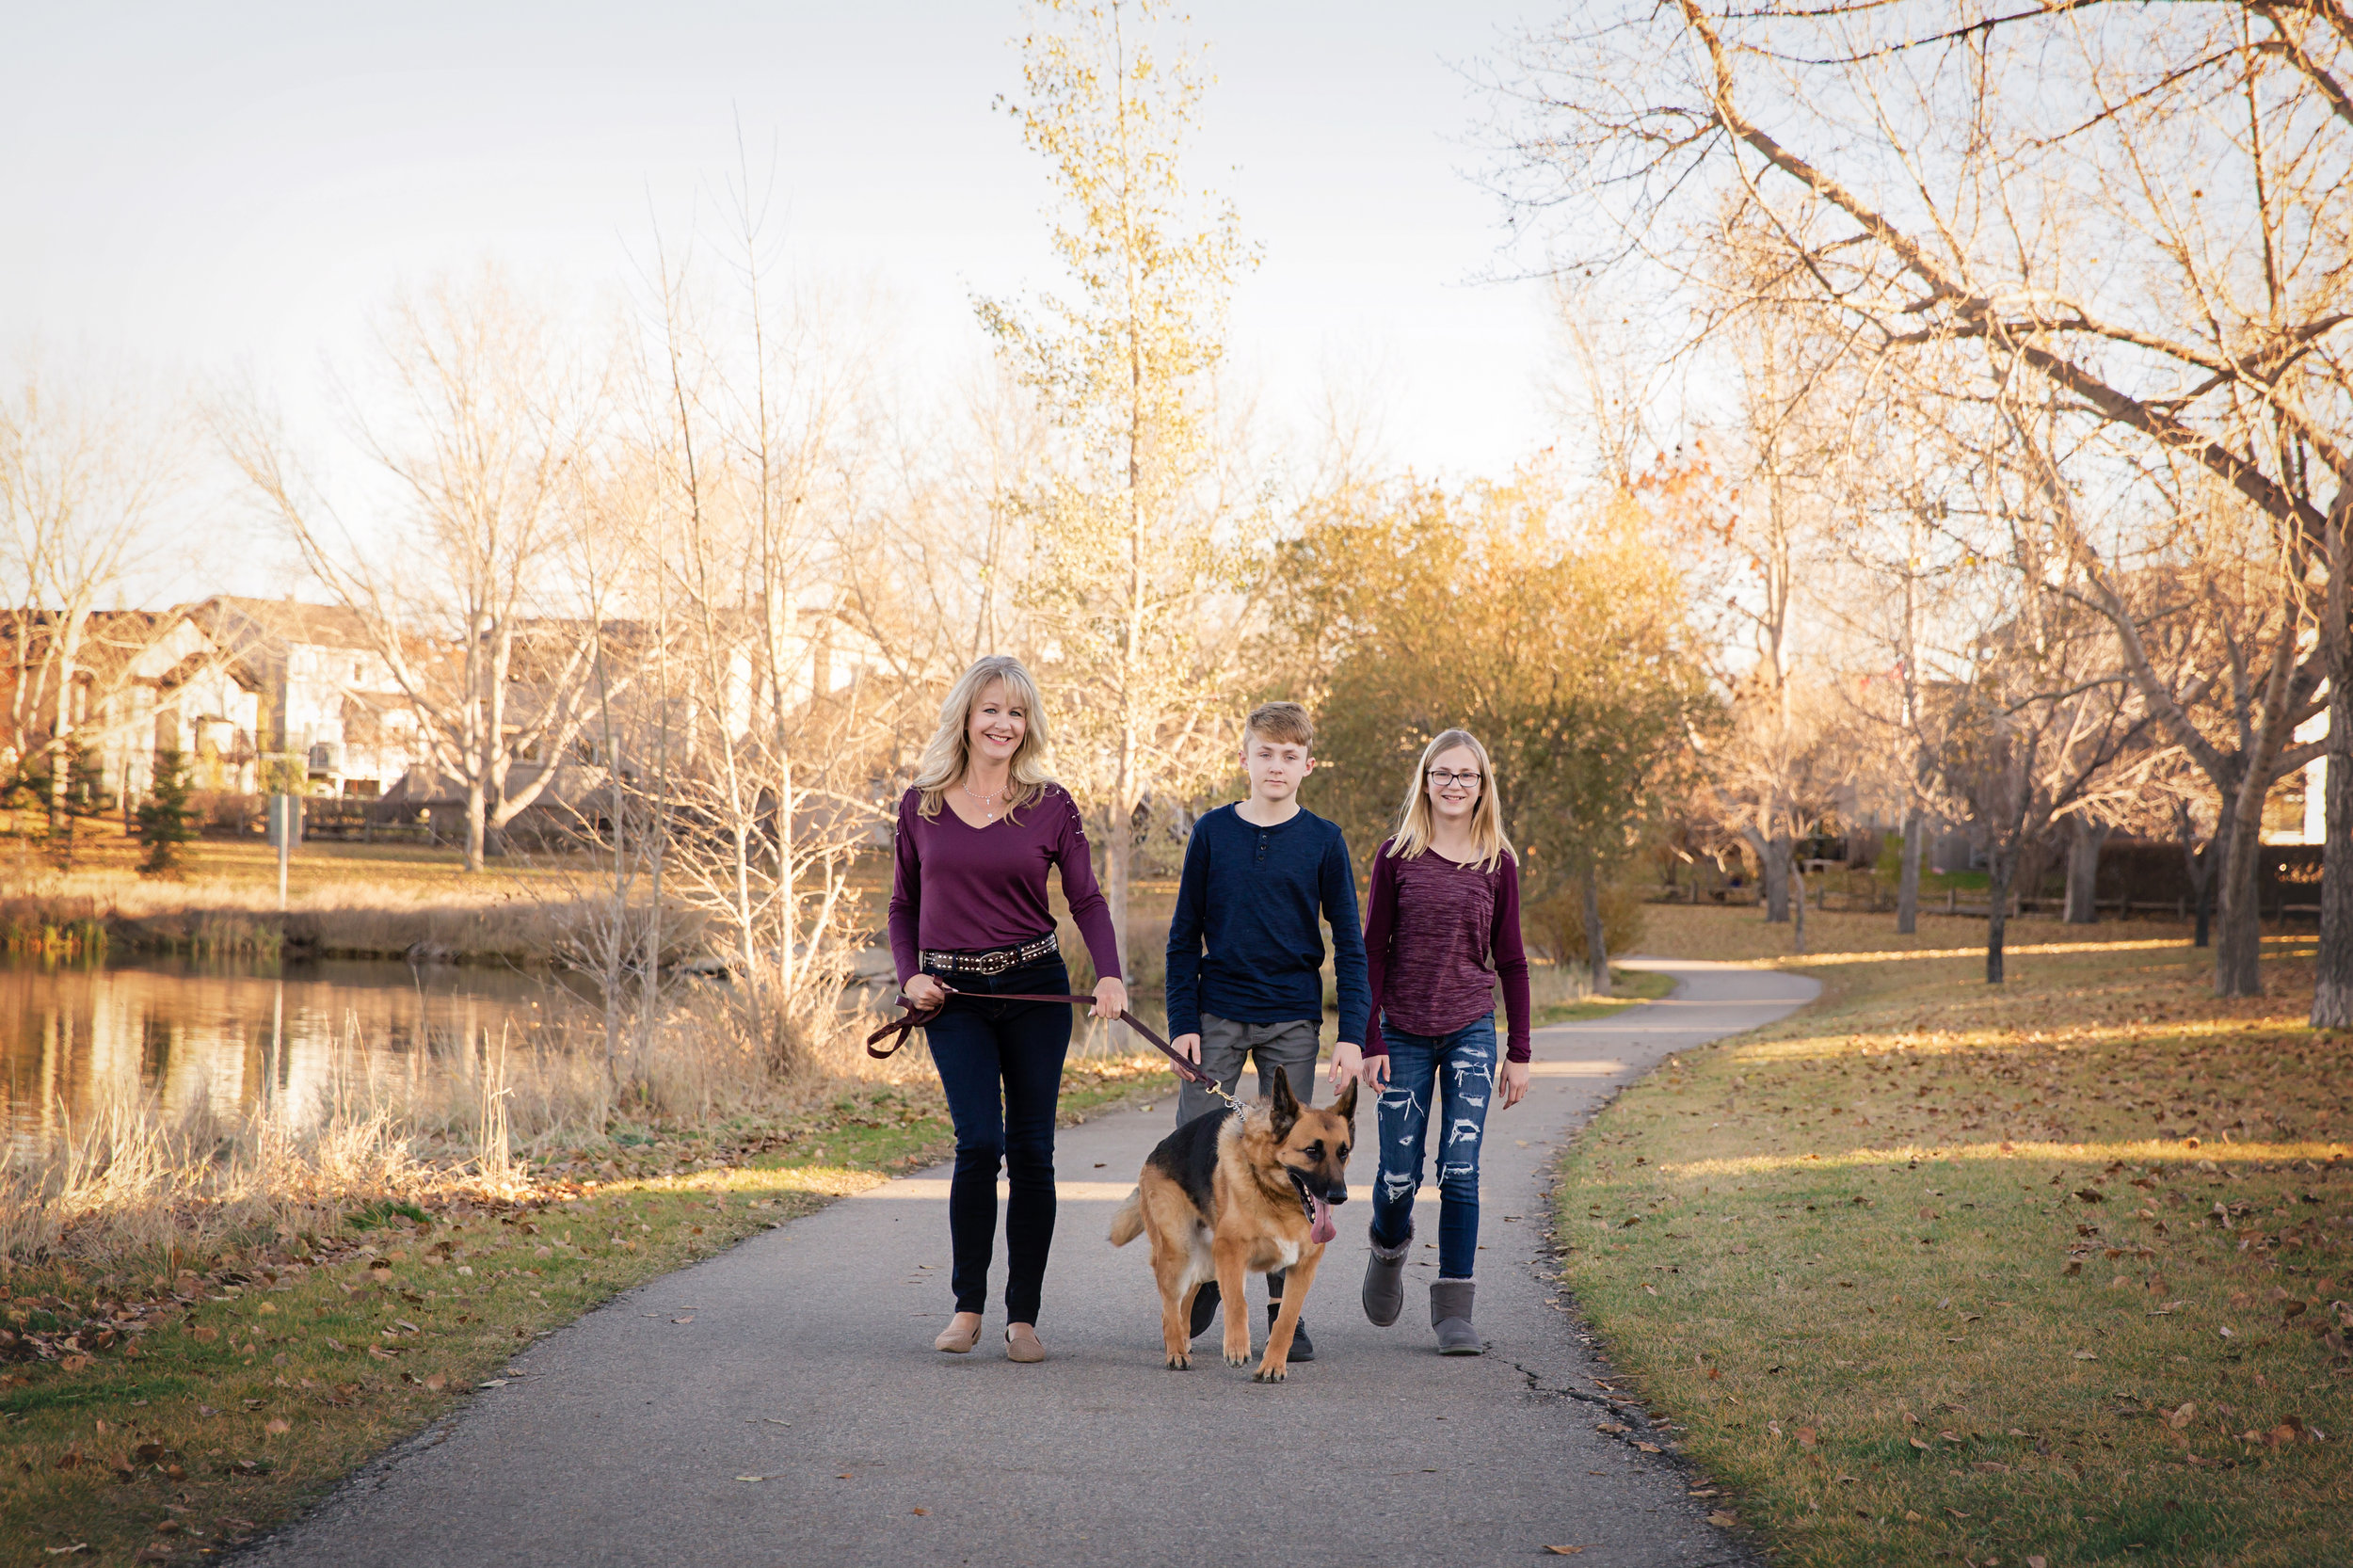 Mom and kids and a dog walking in a park. Fall in Calgary. Calgary family photographer. Milashka photography